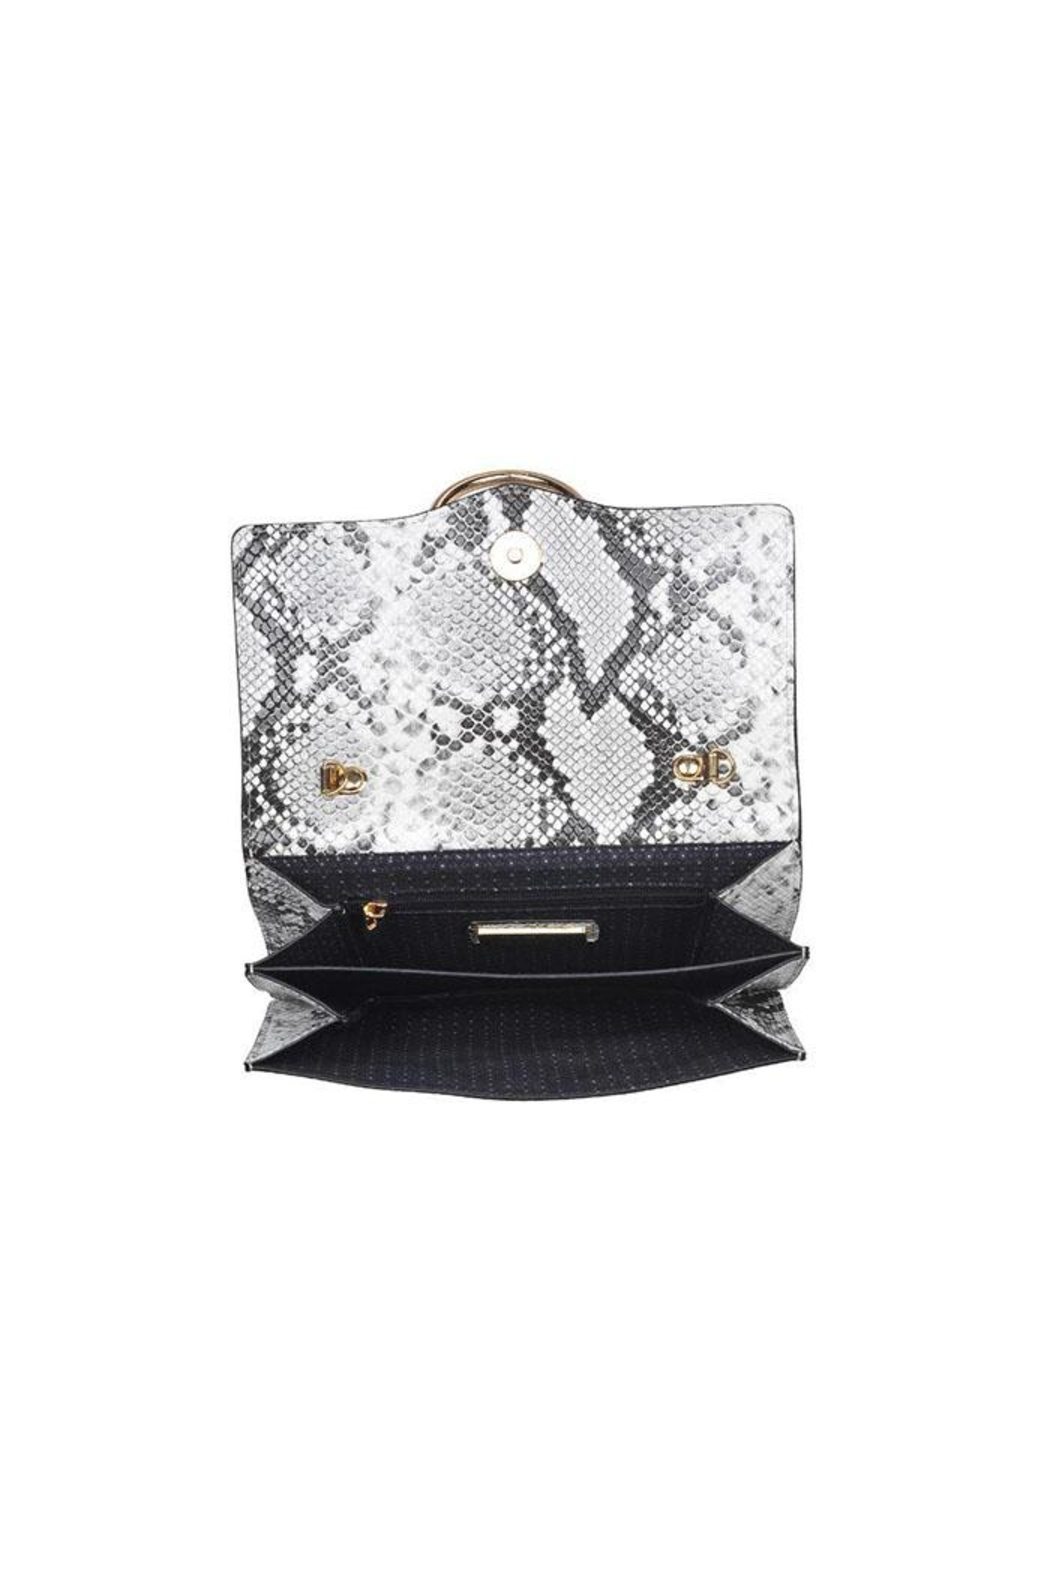 Urban Expressions Snake Print Crossbody - Back Cropped Image